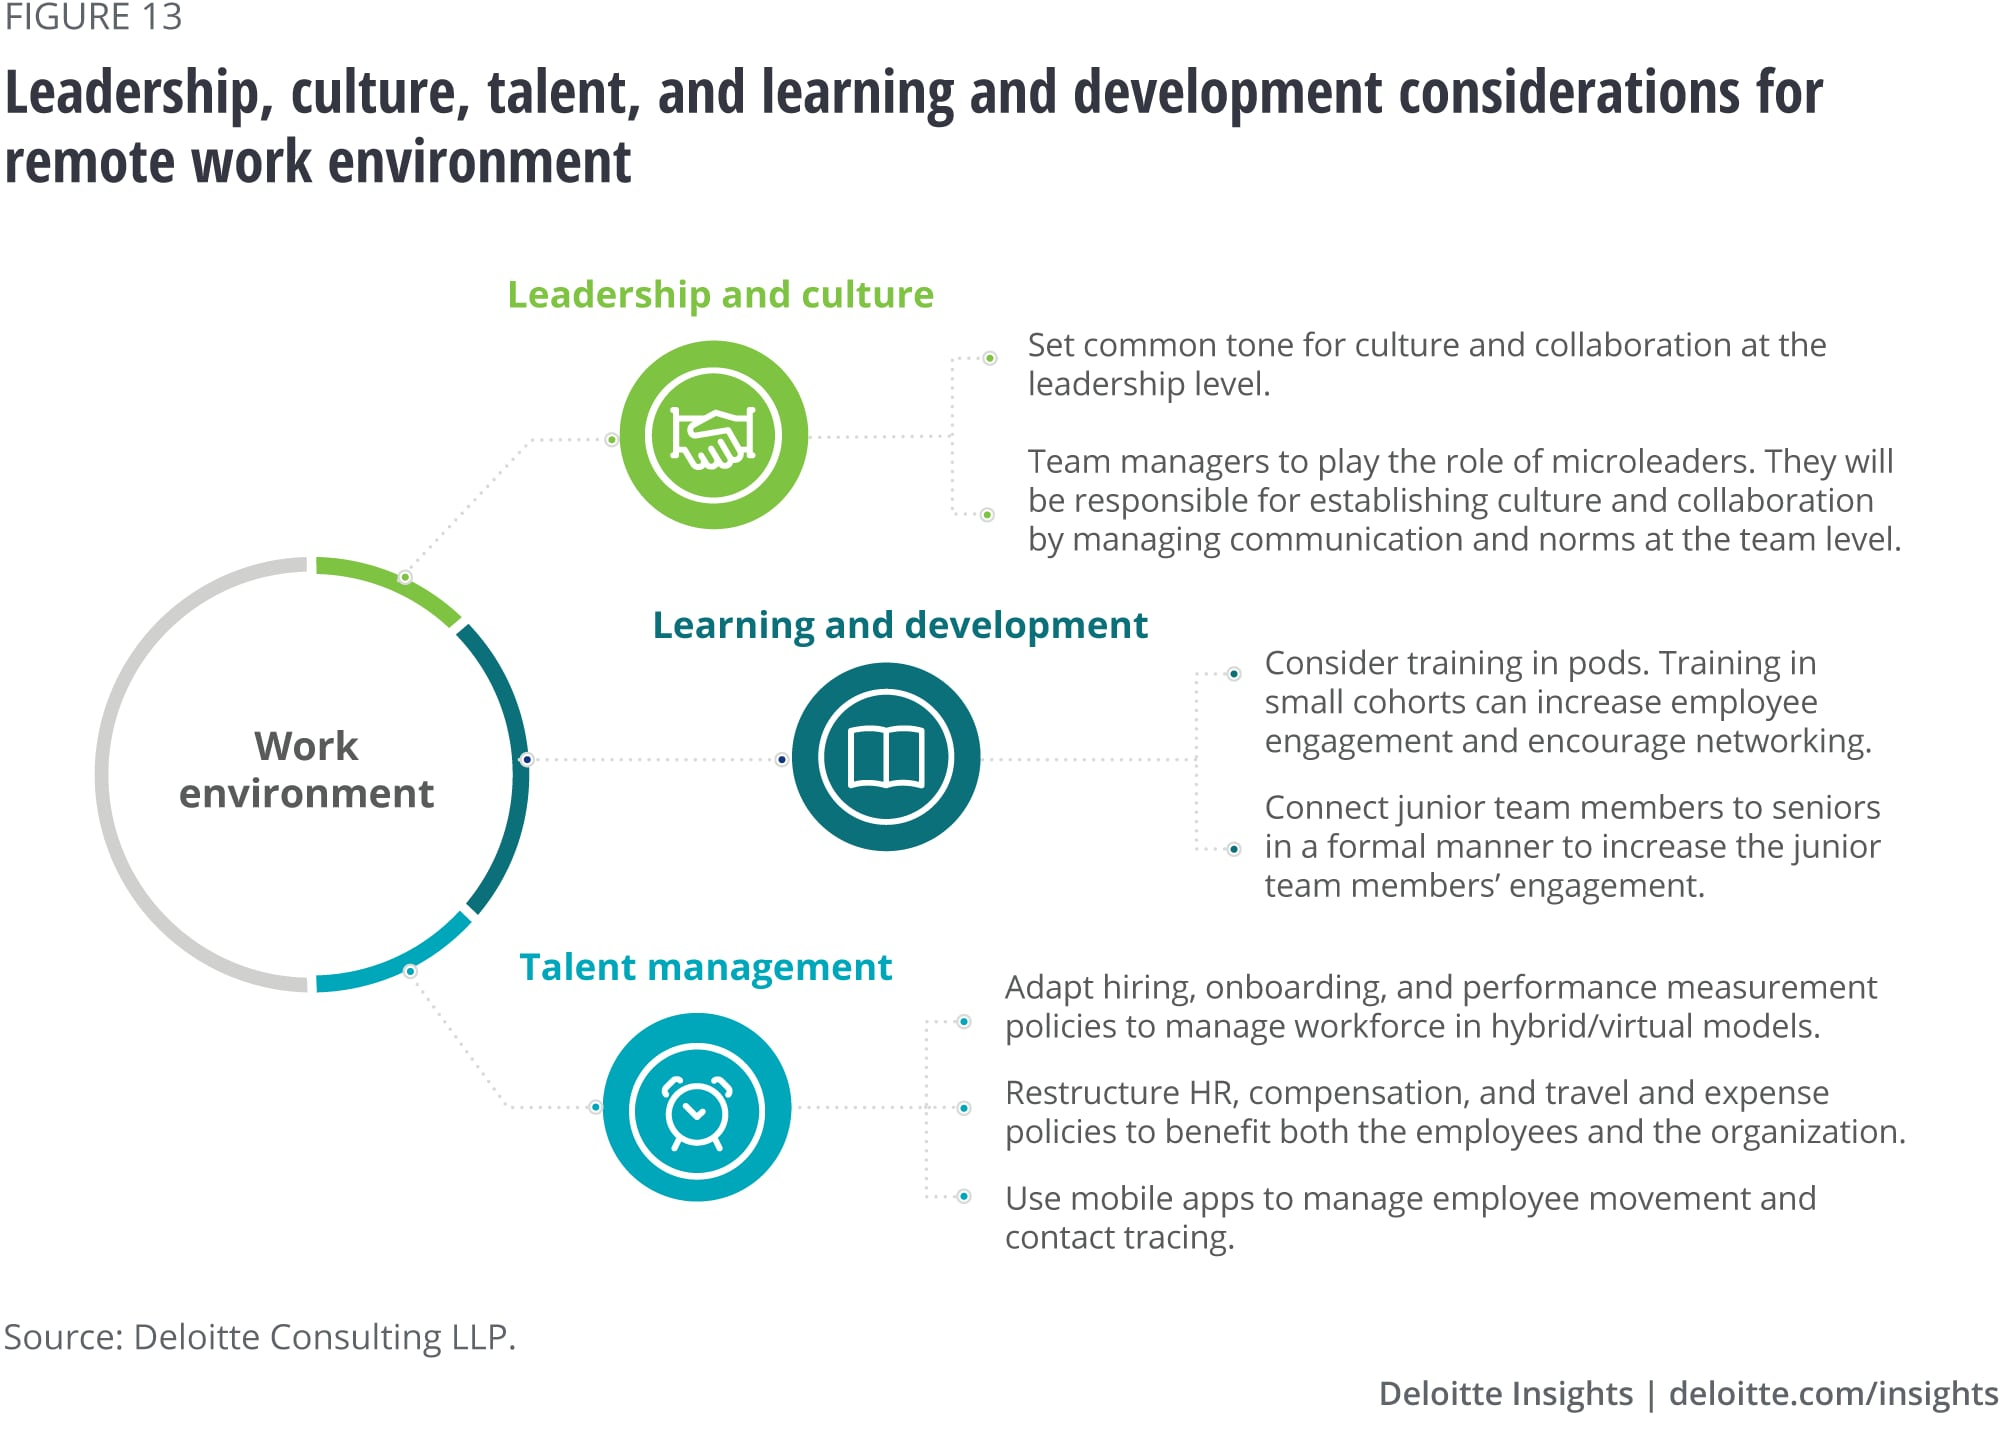 Leadership, culture, talent, and learning and development considerations for remote work environment